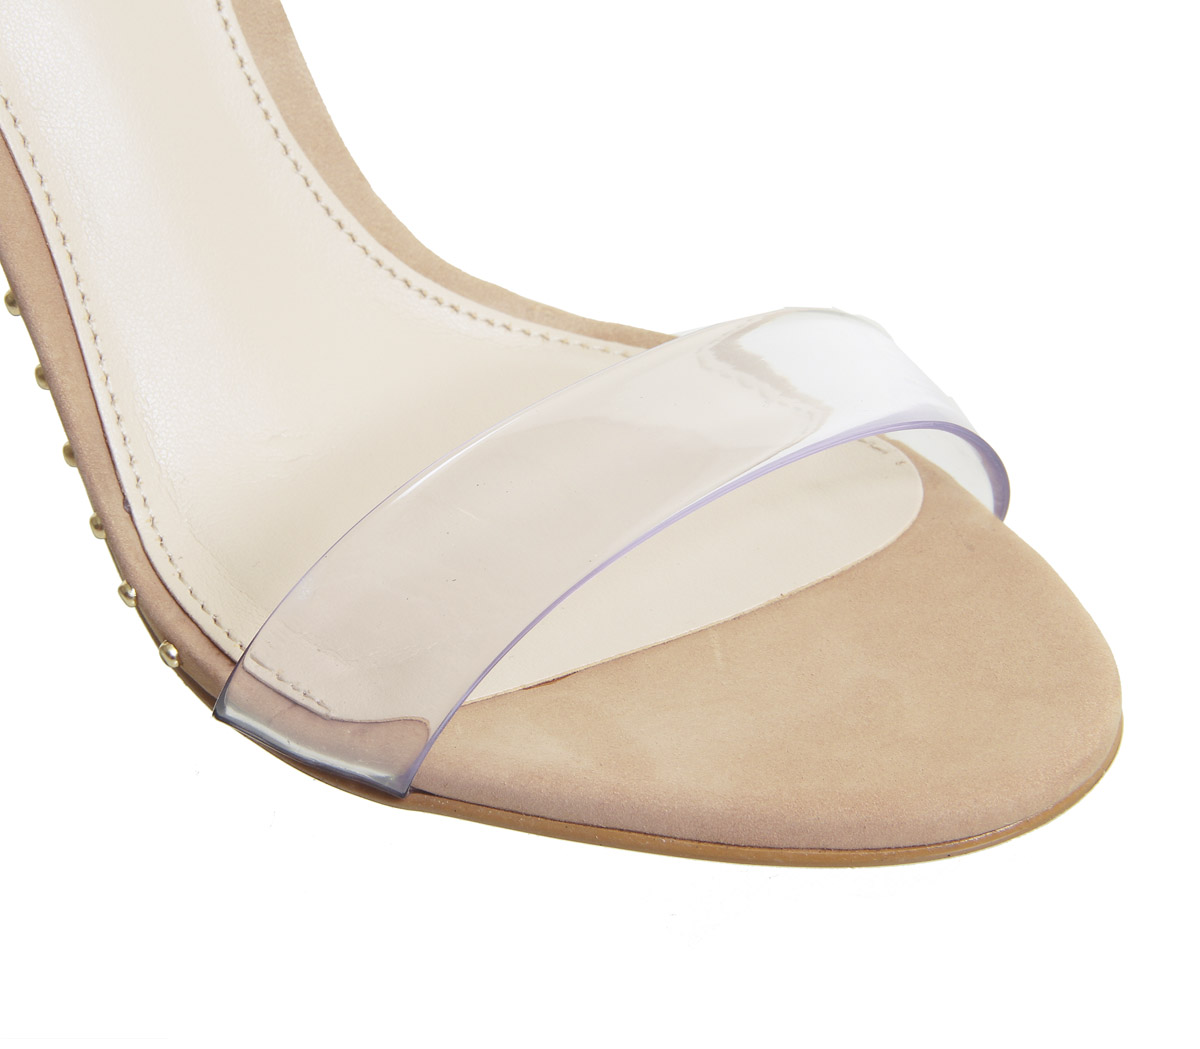 Womens Office Horoscope Sandals Clear Strap Studded Sandals Horoscope NUDE Heels a5cd65